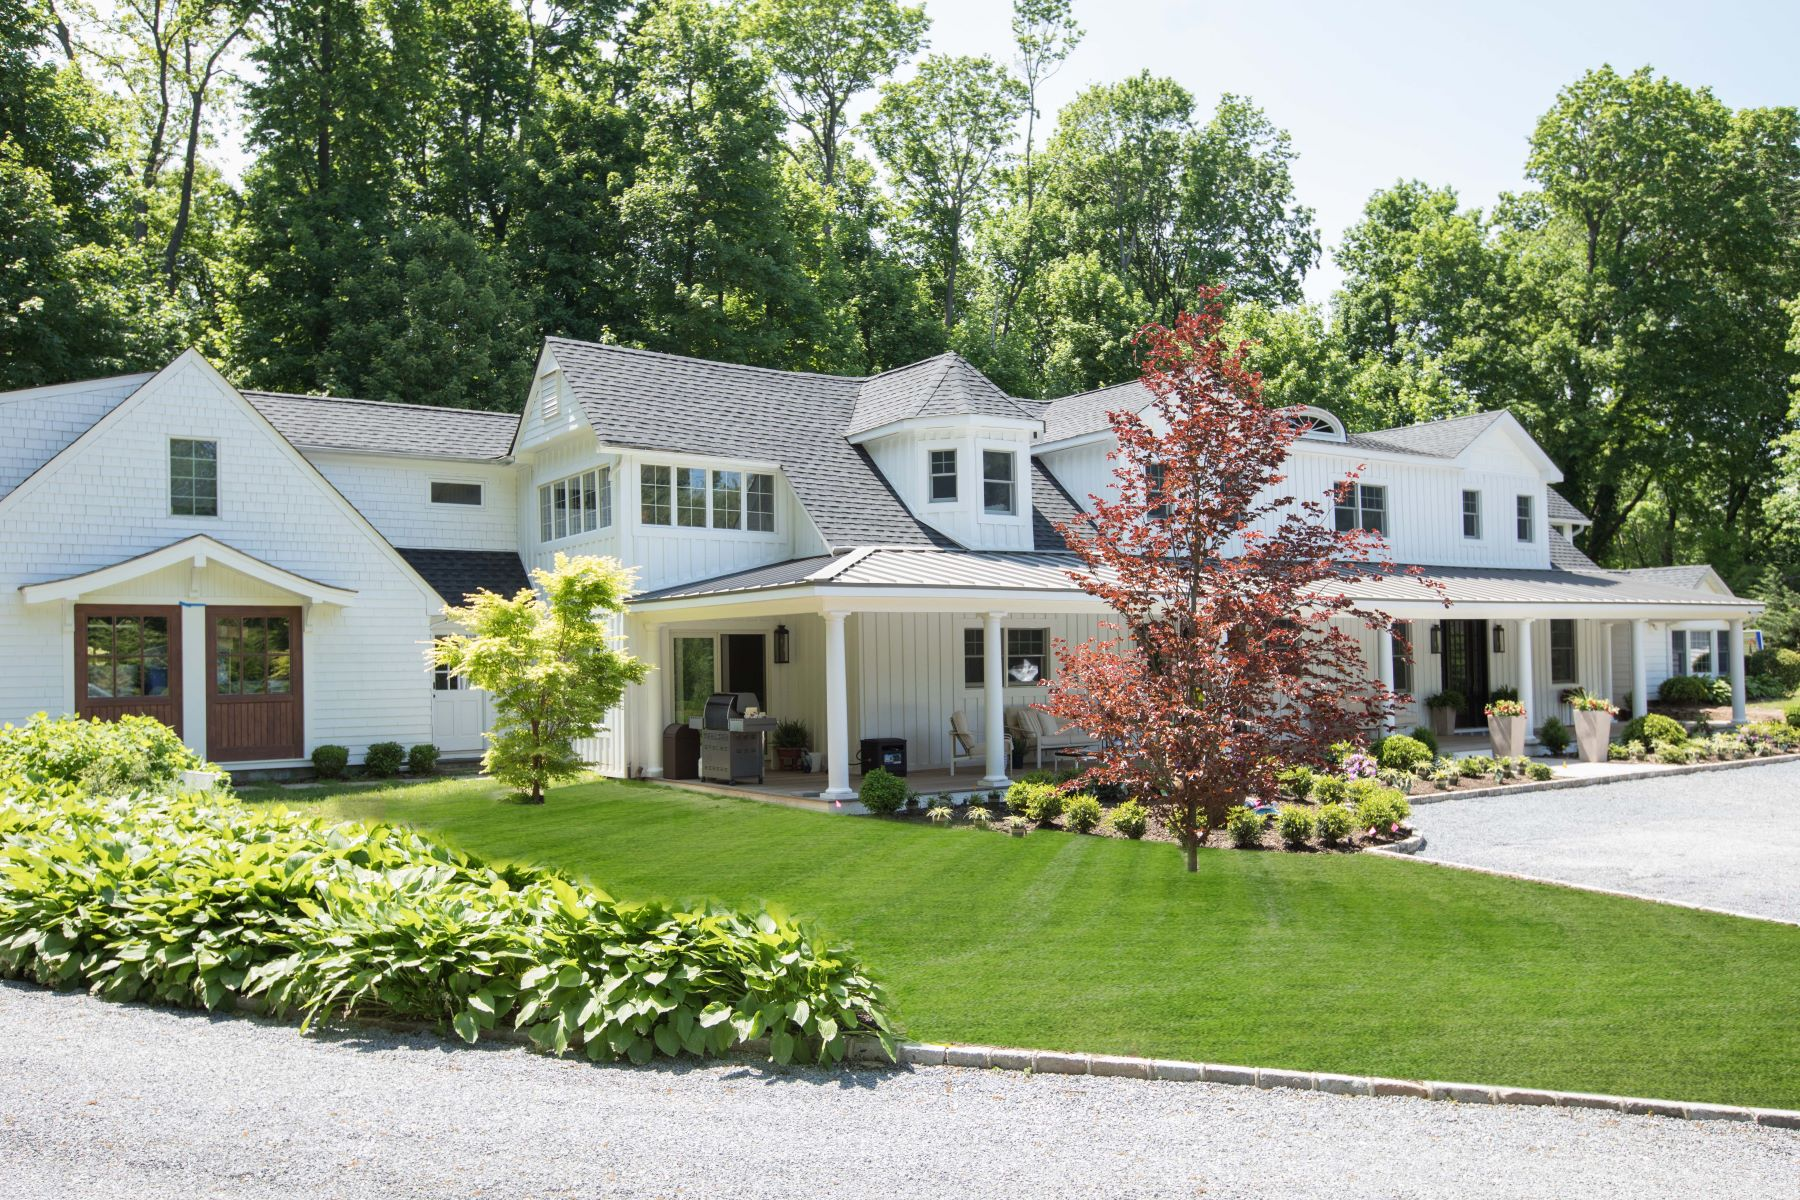 Single Family Homes for Active at Oyster Bay Cove 78 Cove Road Oyster Bay Cove, New York 11771 United States